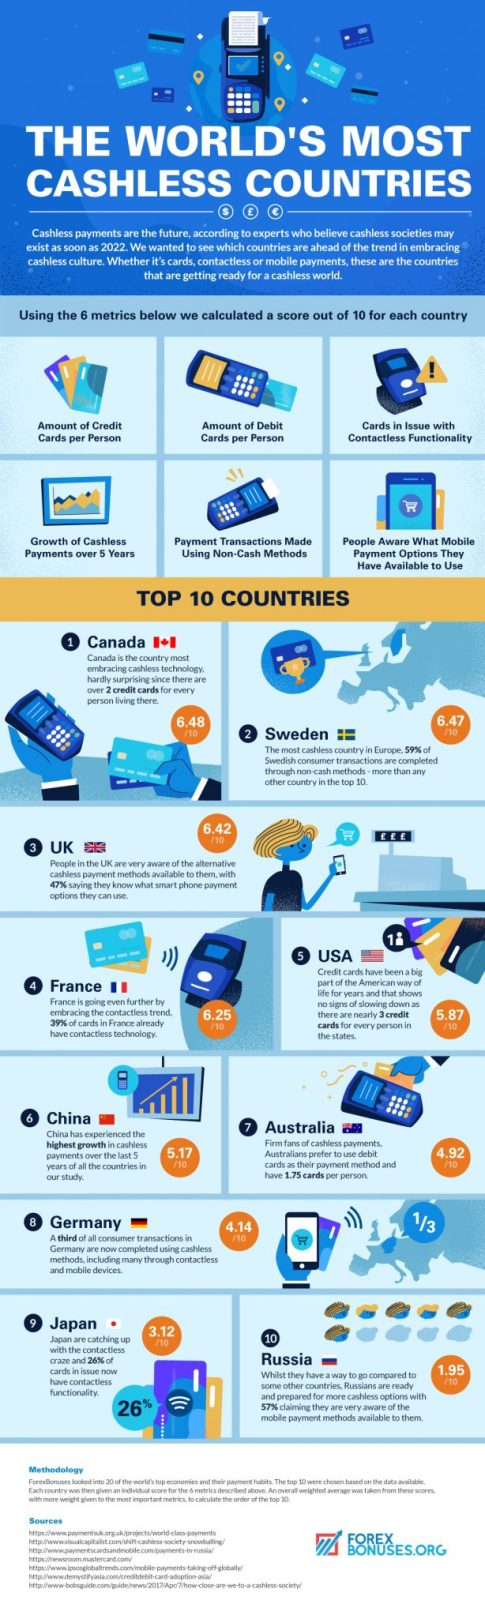 Cashless Countries Around the World